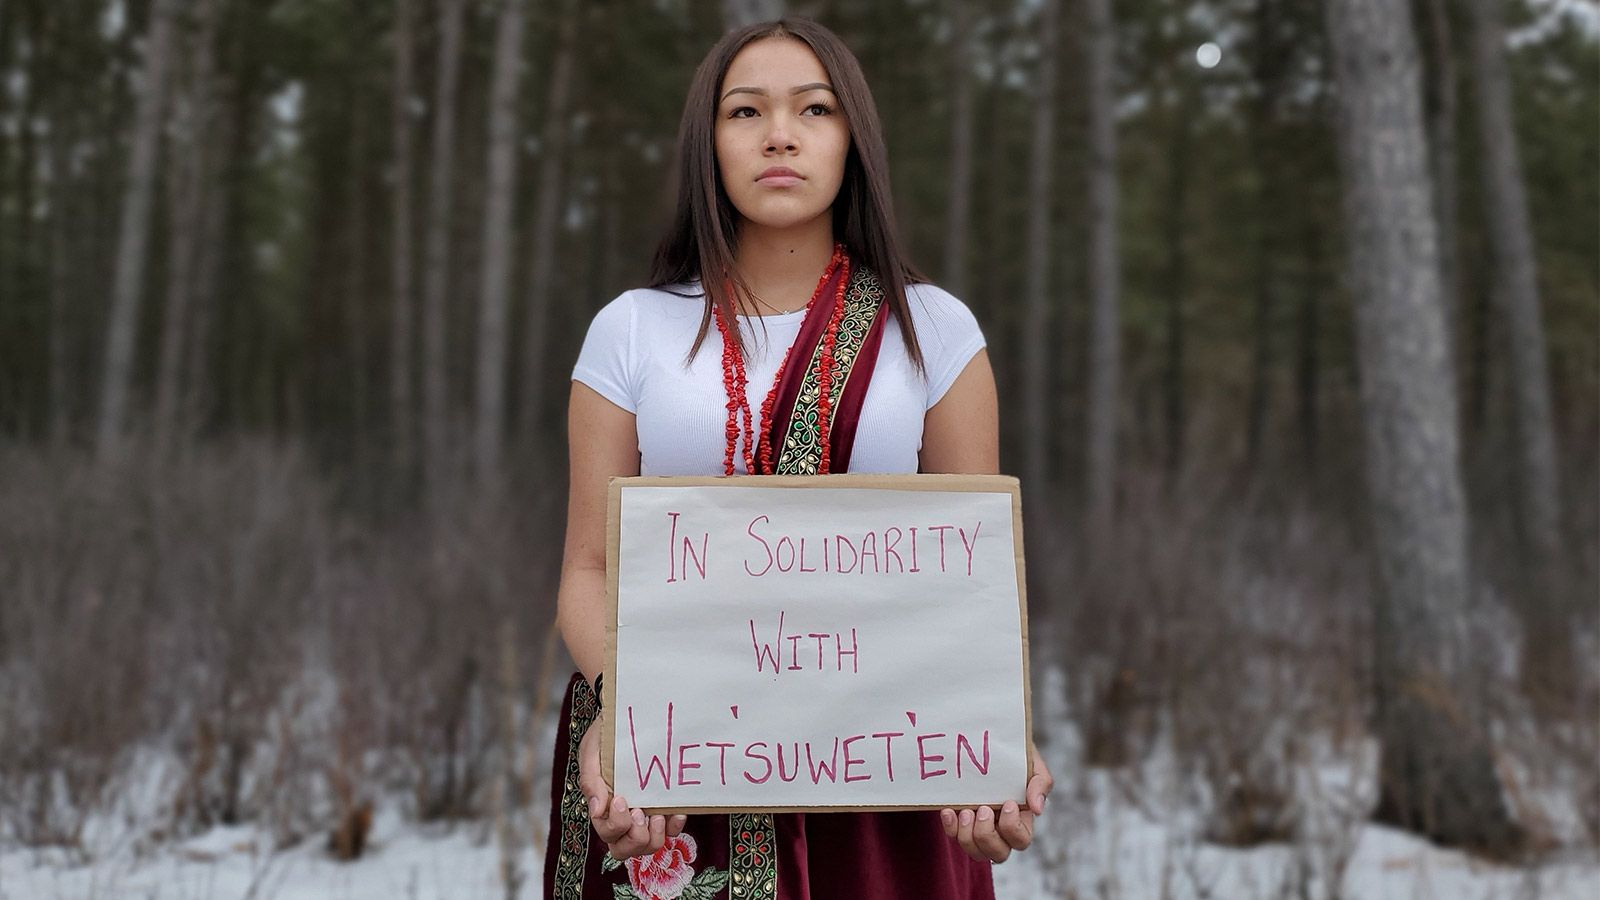 Autumn Peltier, a youth climate activist, standing holding a sign that says 'In Solidarity with Wetsuweten'